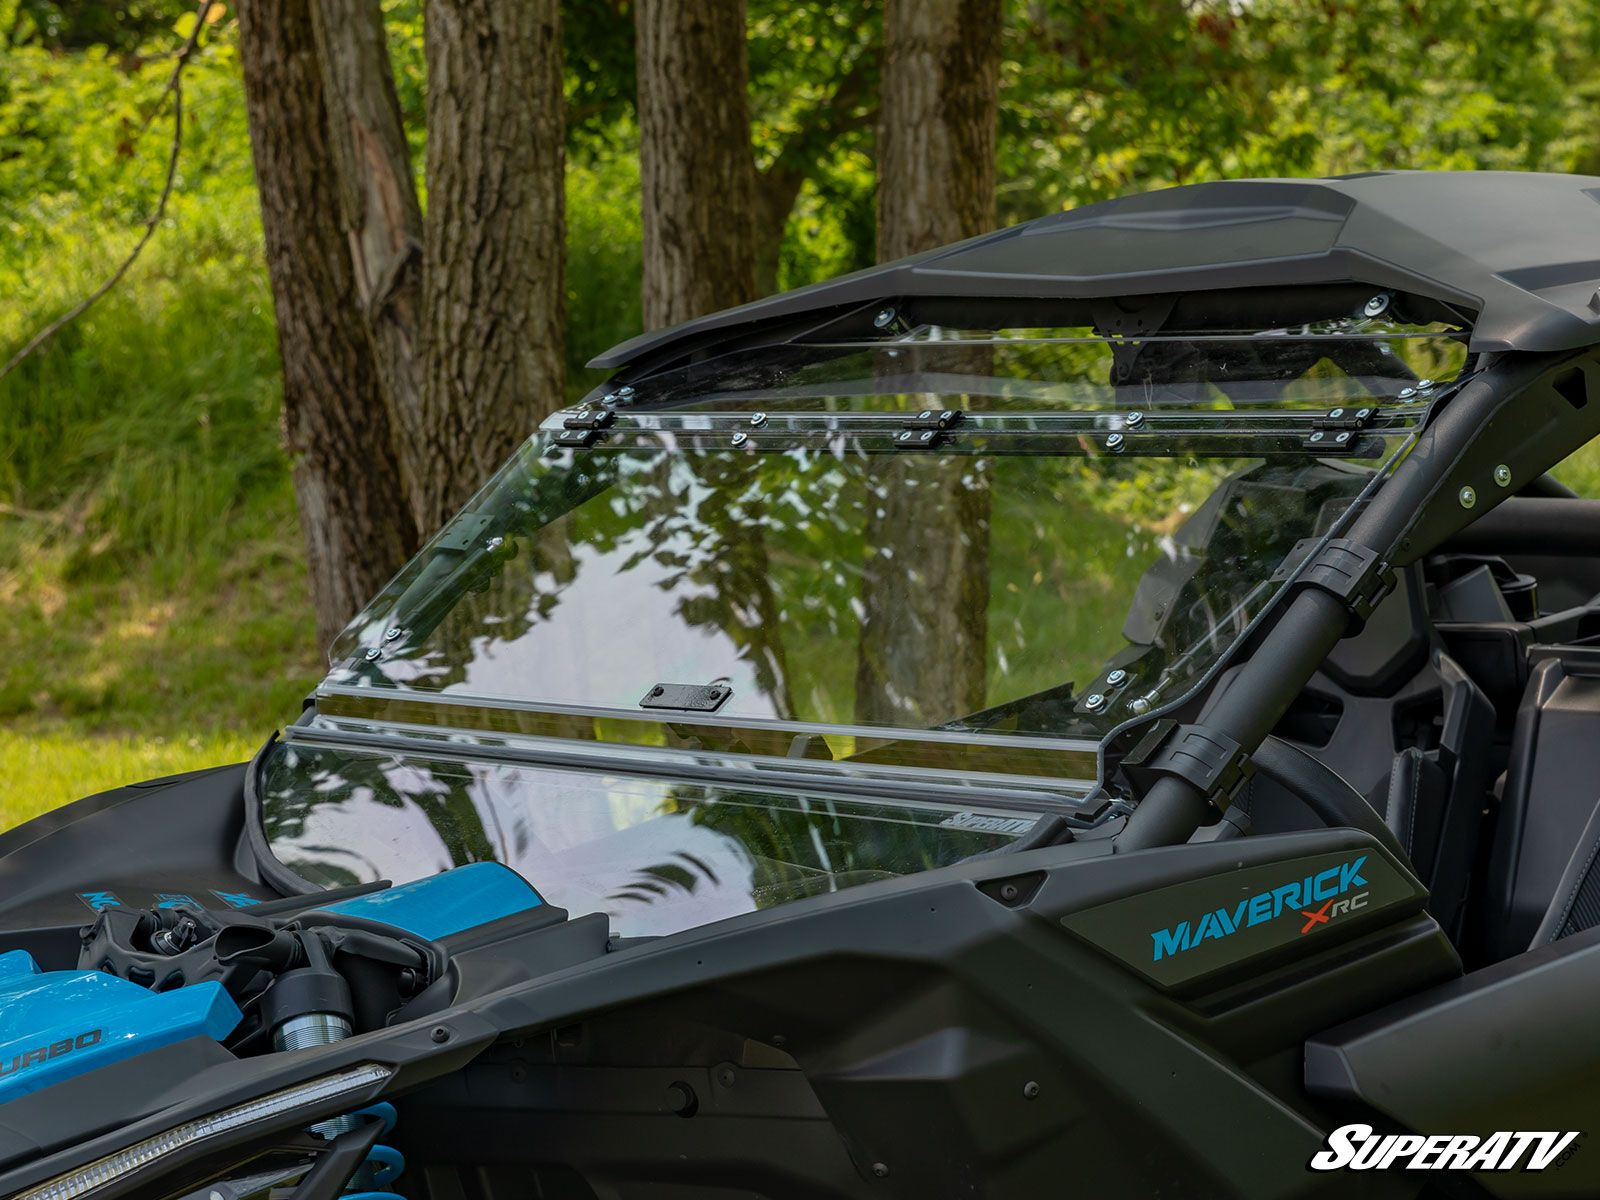 How to Install a Flip Windshield on a Can-Am Maverick X3